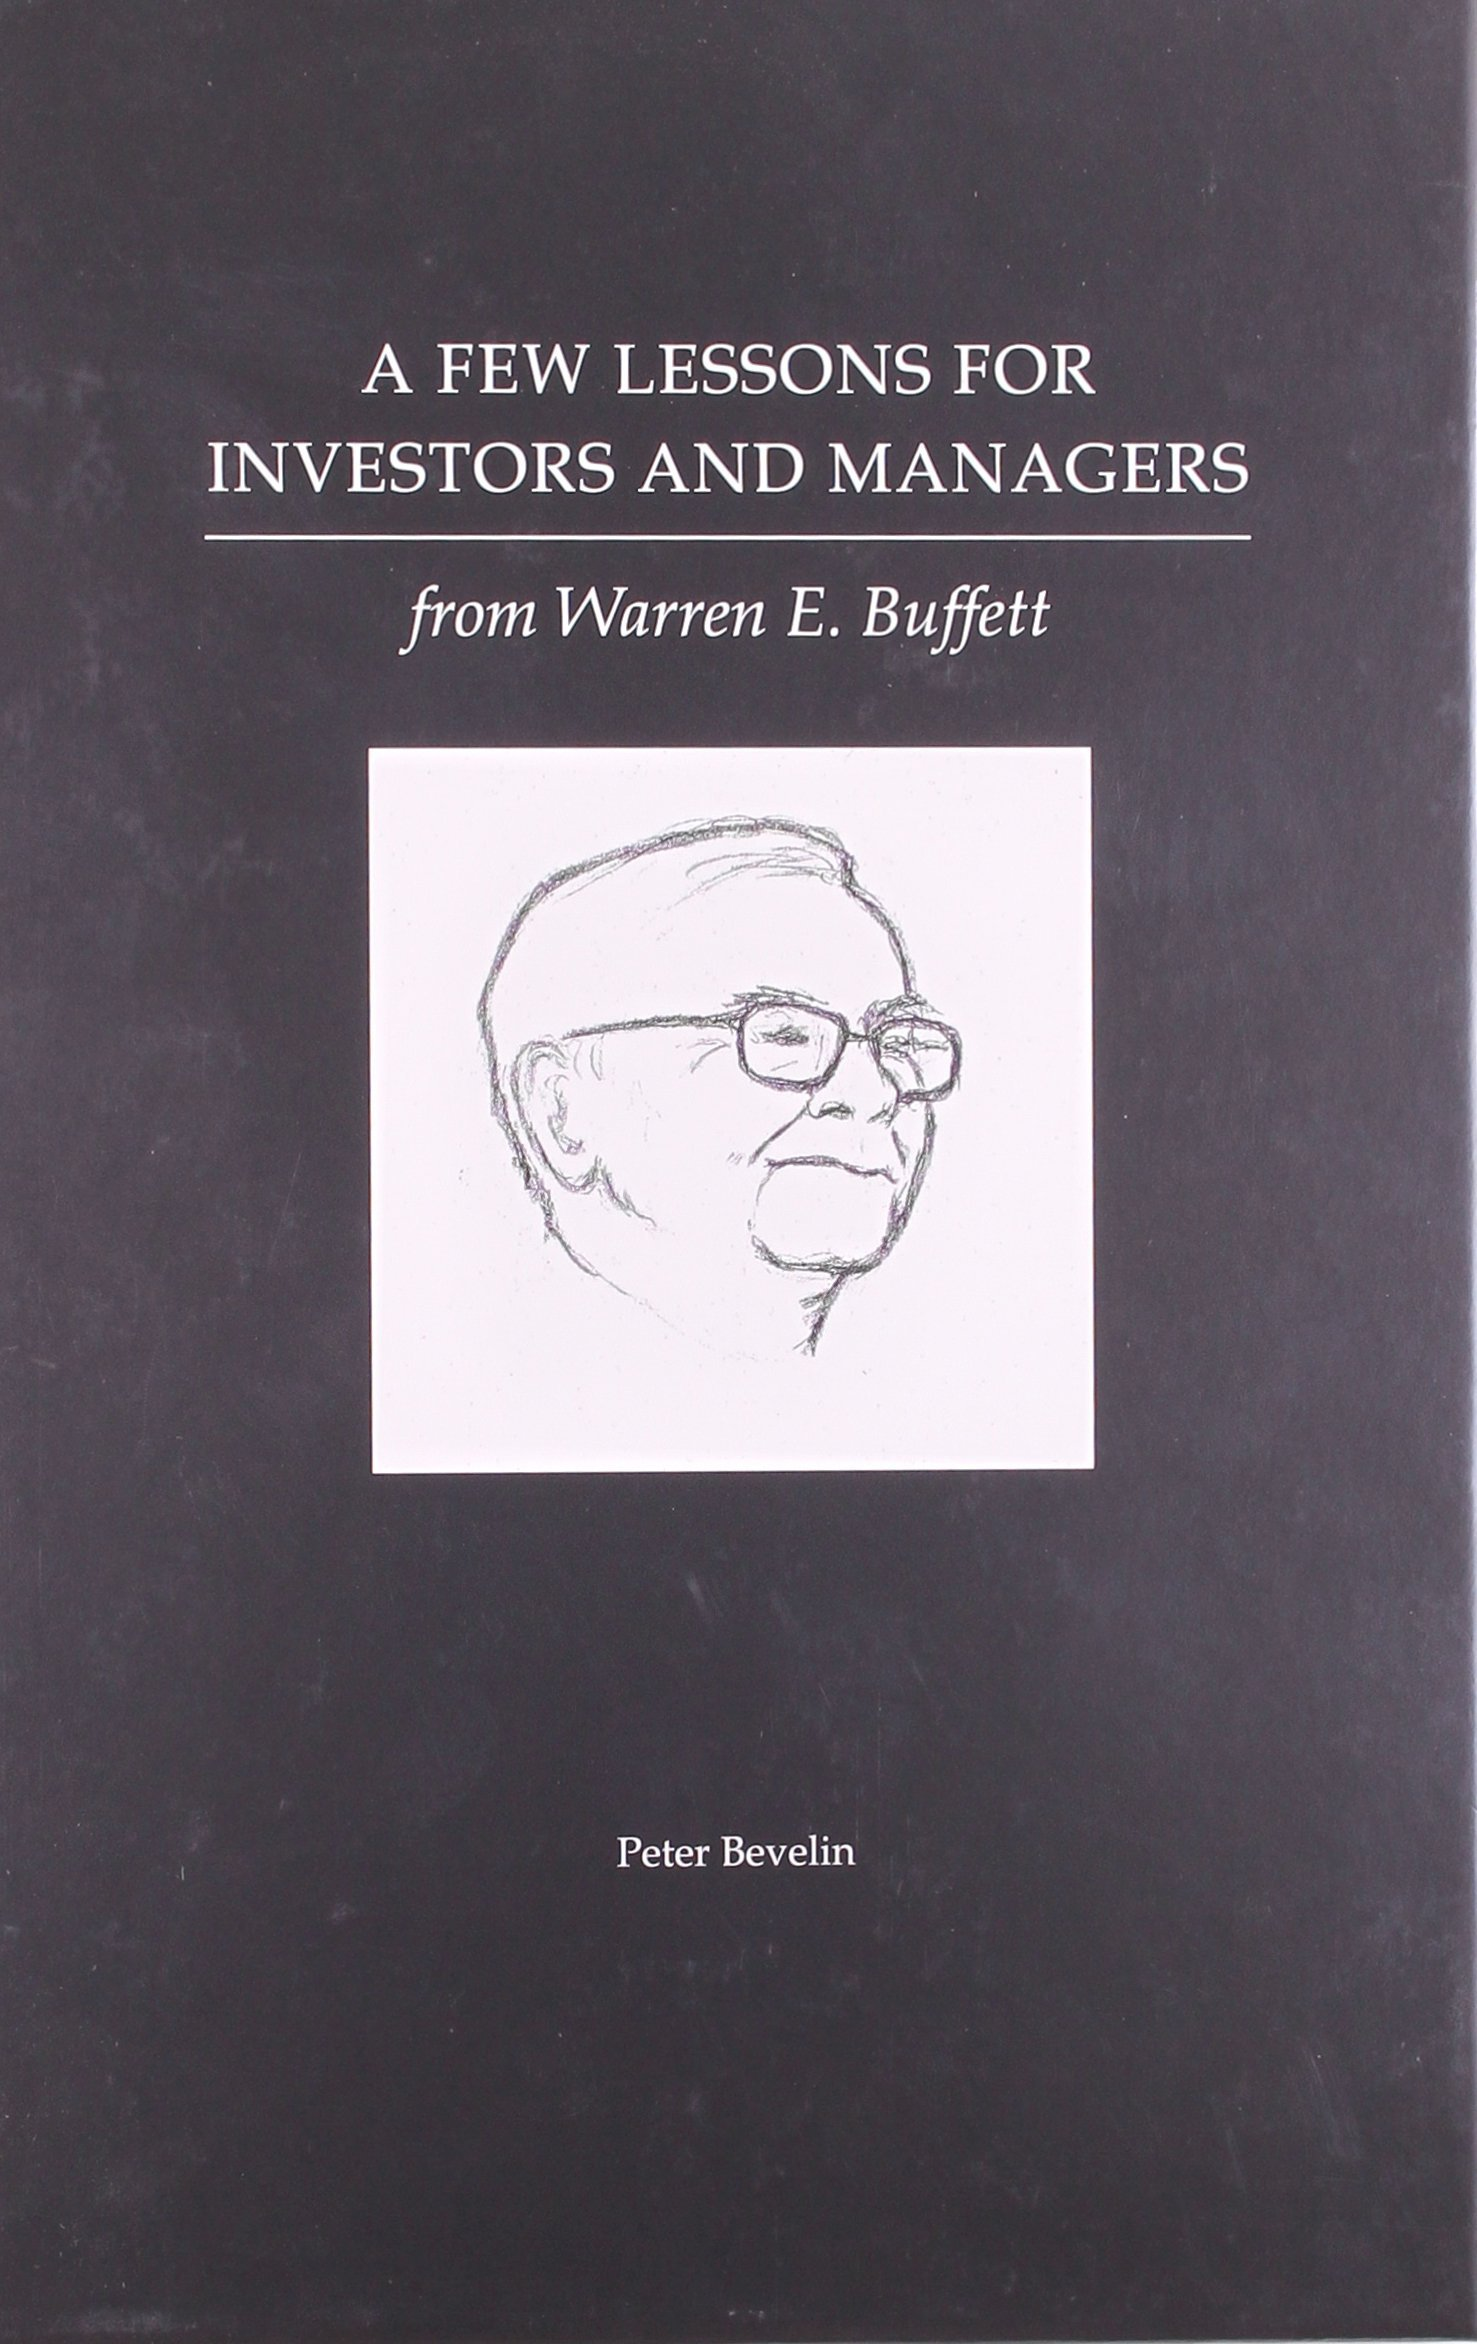 A Few Lessons for Investors and Managers From Warren Buffett